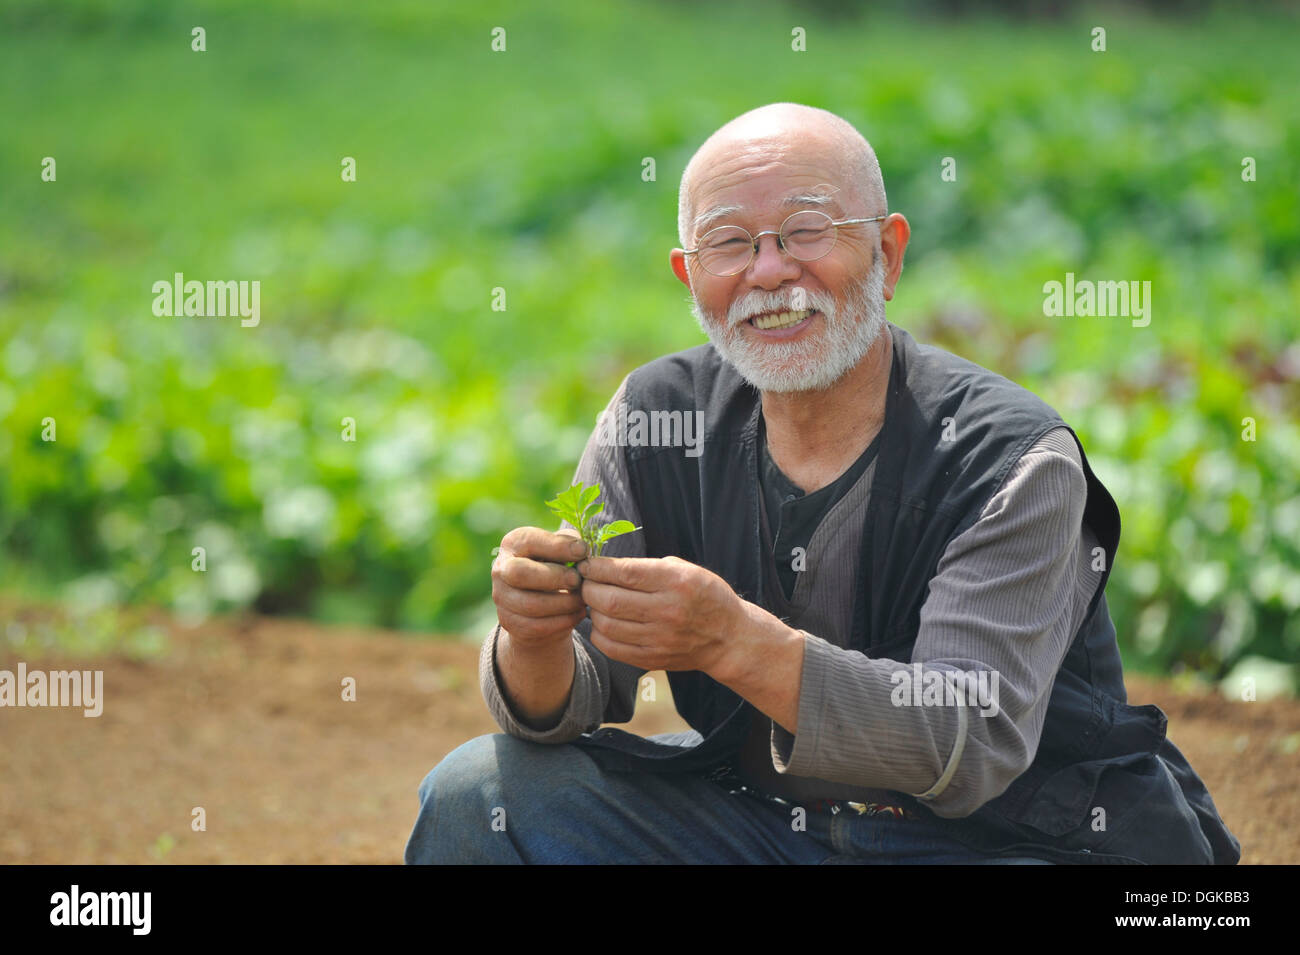 Farmer with leaf smiling at camera - Stock Image